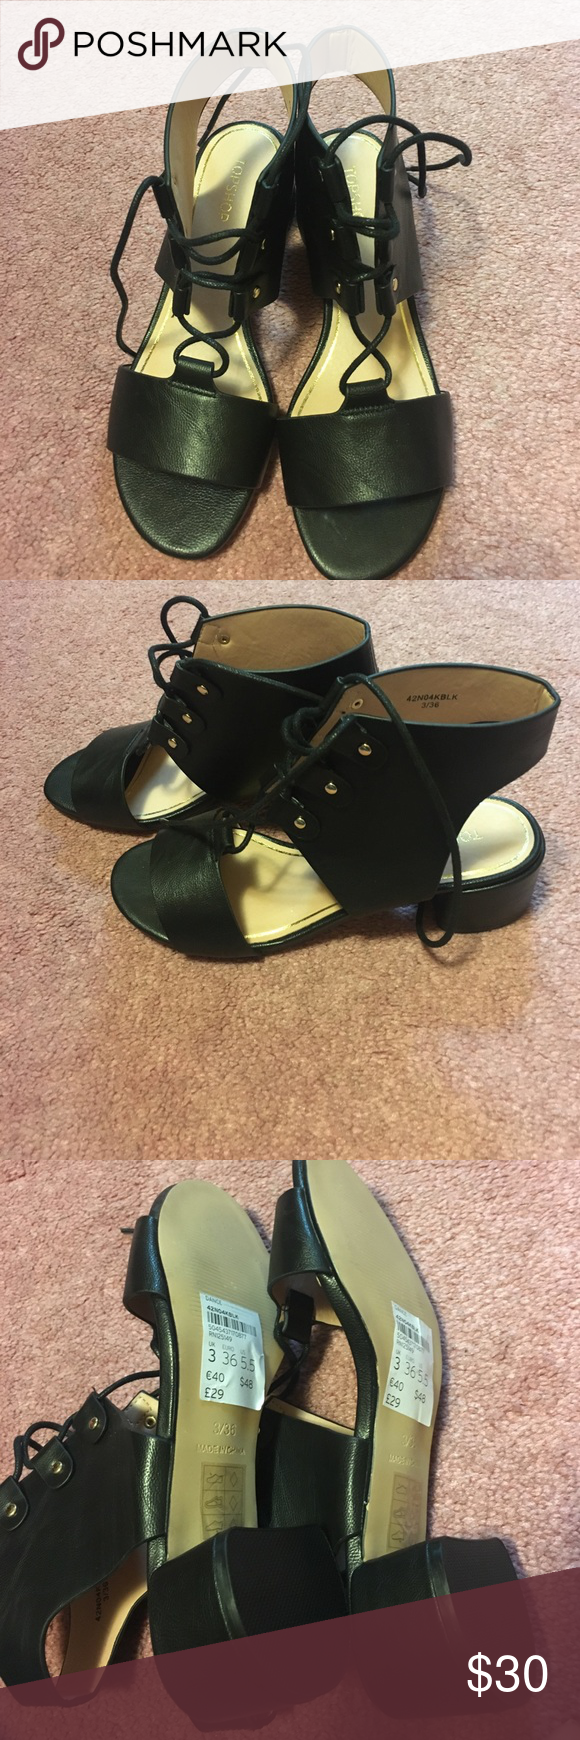 Brand new top shop sandals Brand new TopShop sandals!! Looks great dress down or up. Topshop Shoes